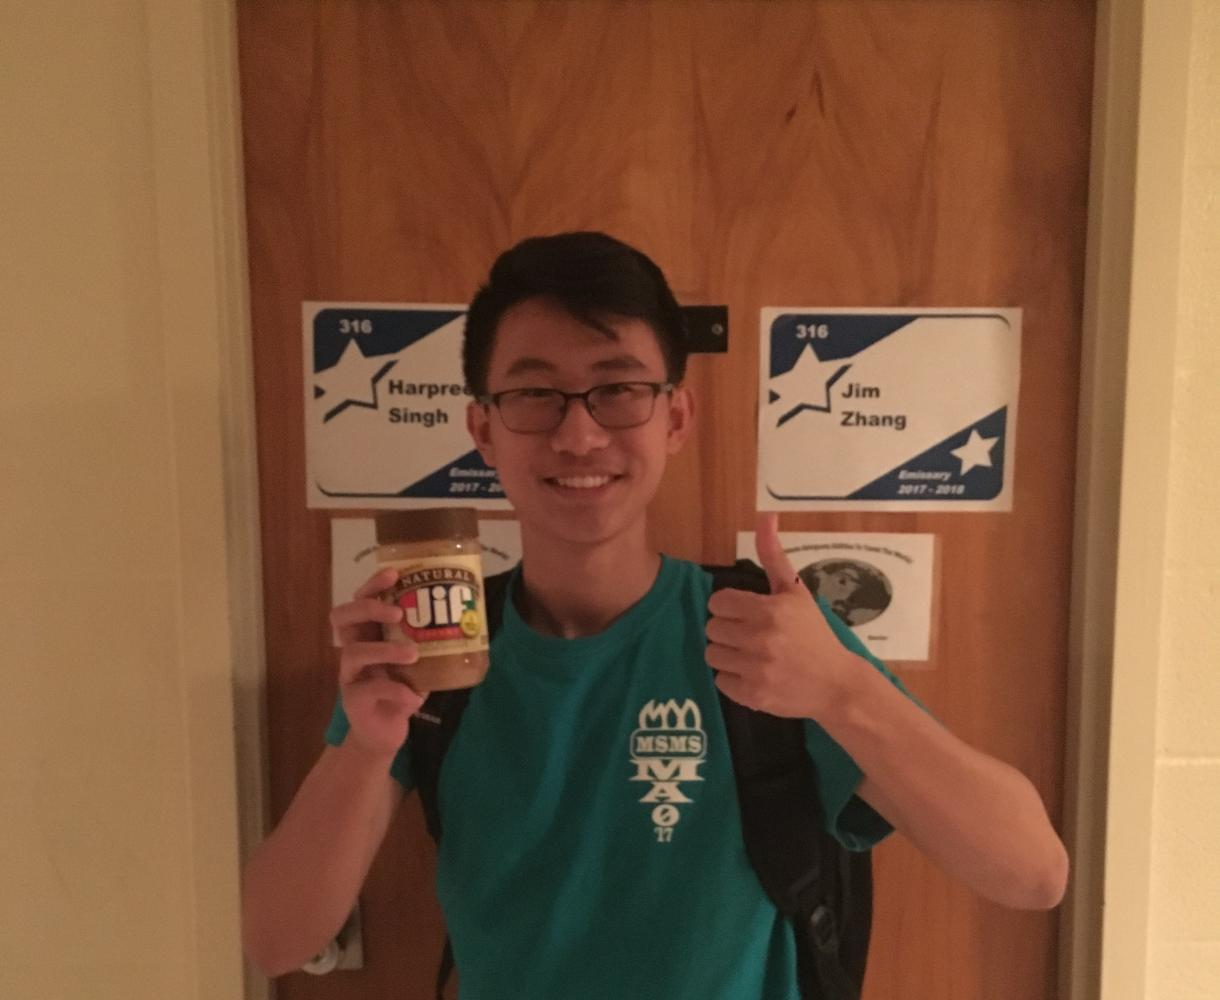 Jim Zhang raises a jar of Jif in celebration of his title as National Merit Semifinalist.